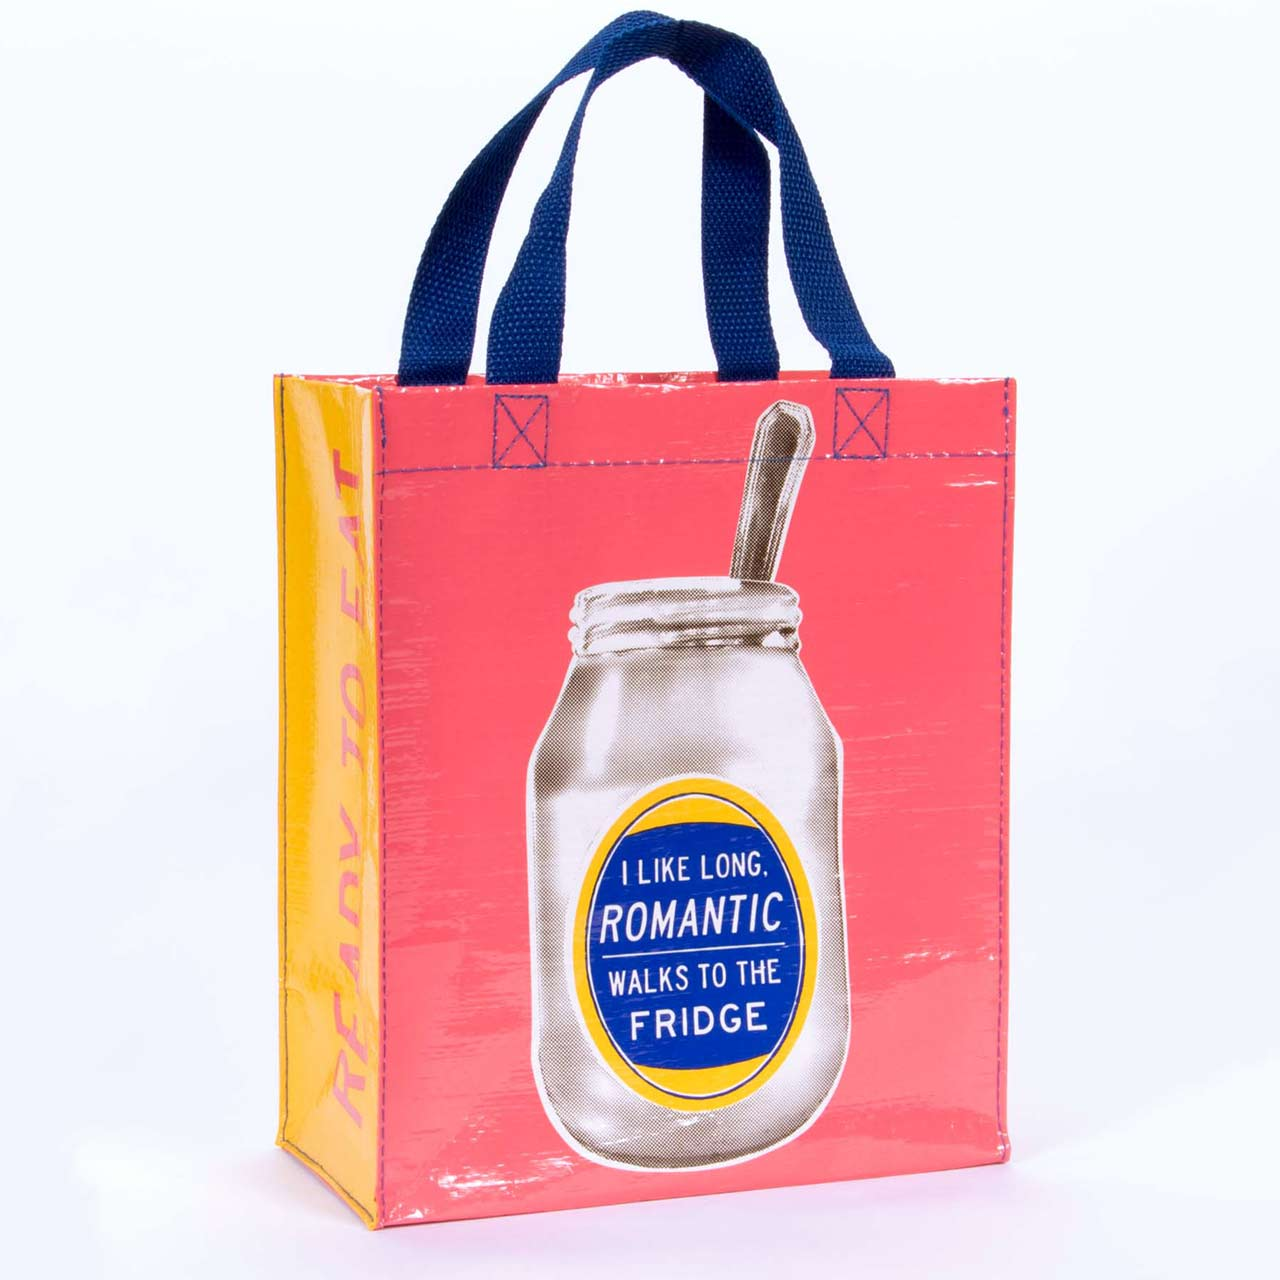 'I like long romantic walks to the fridge' Hand Tote by Blue Q  | the design gift shop